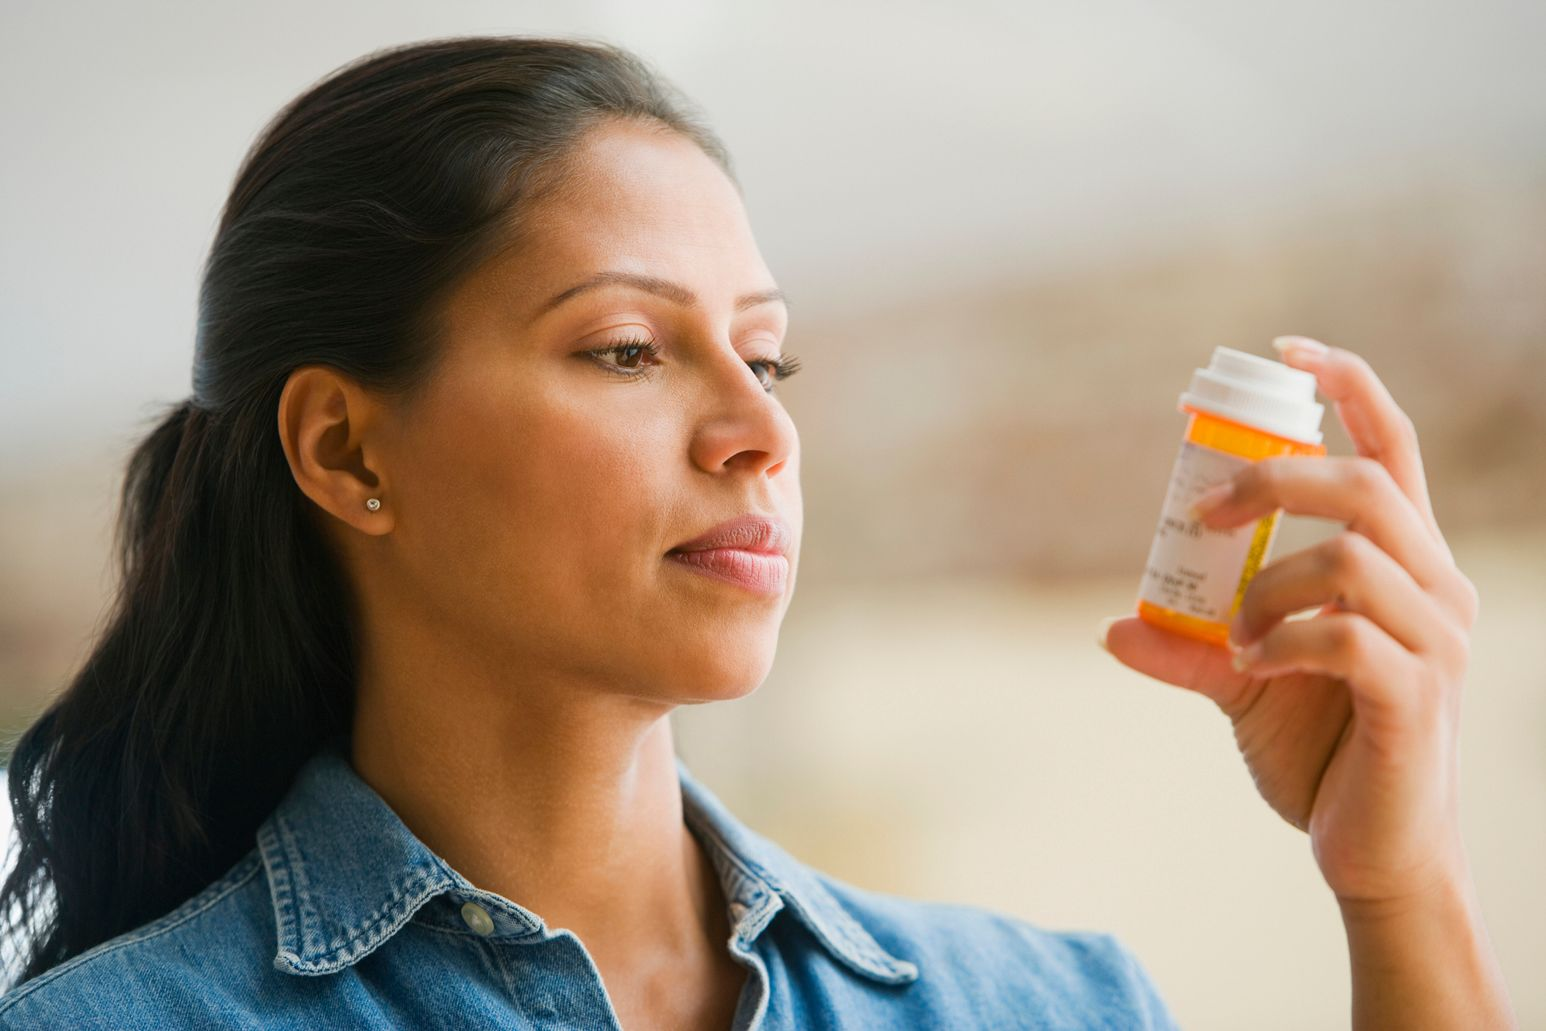 A woman looks at a pill bottle